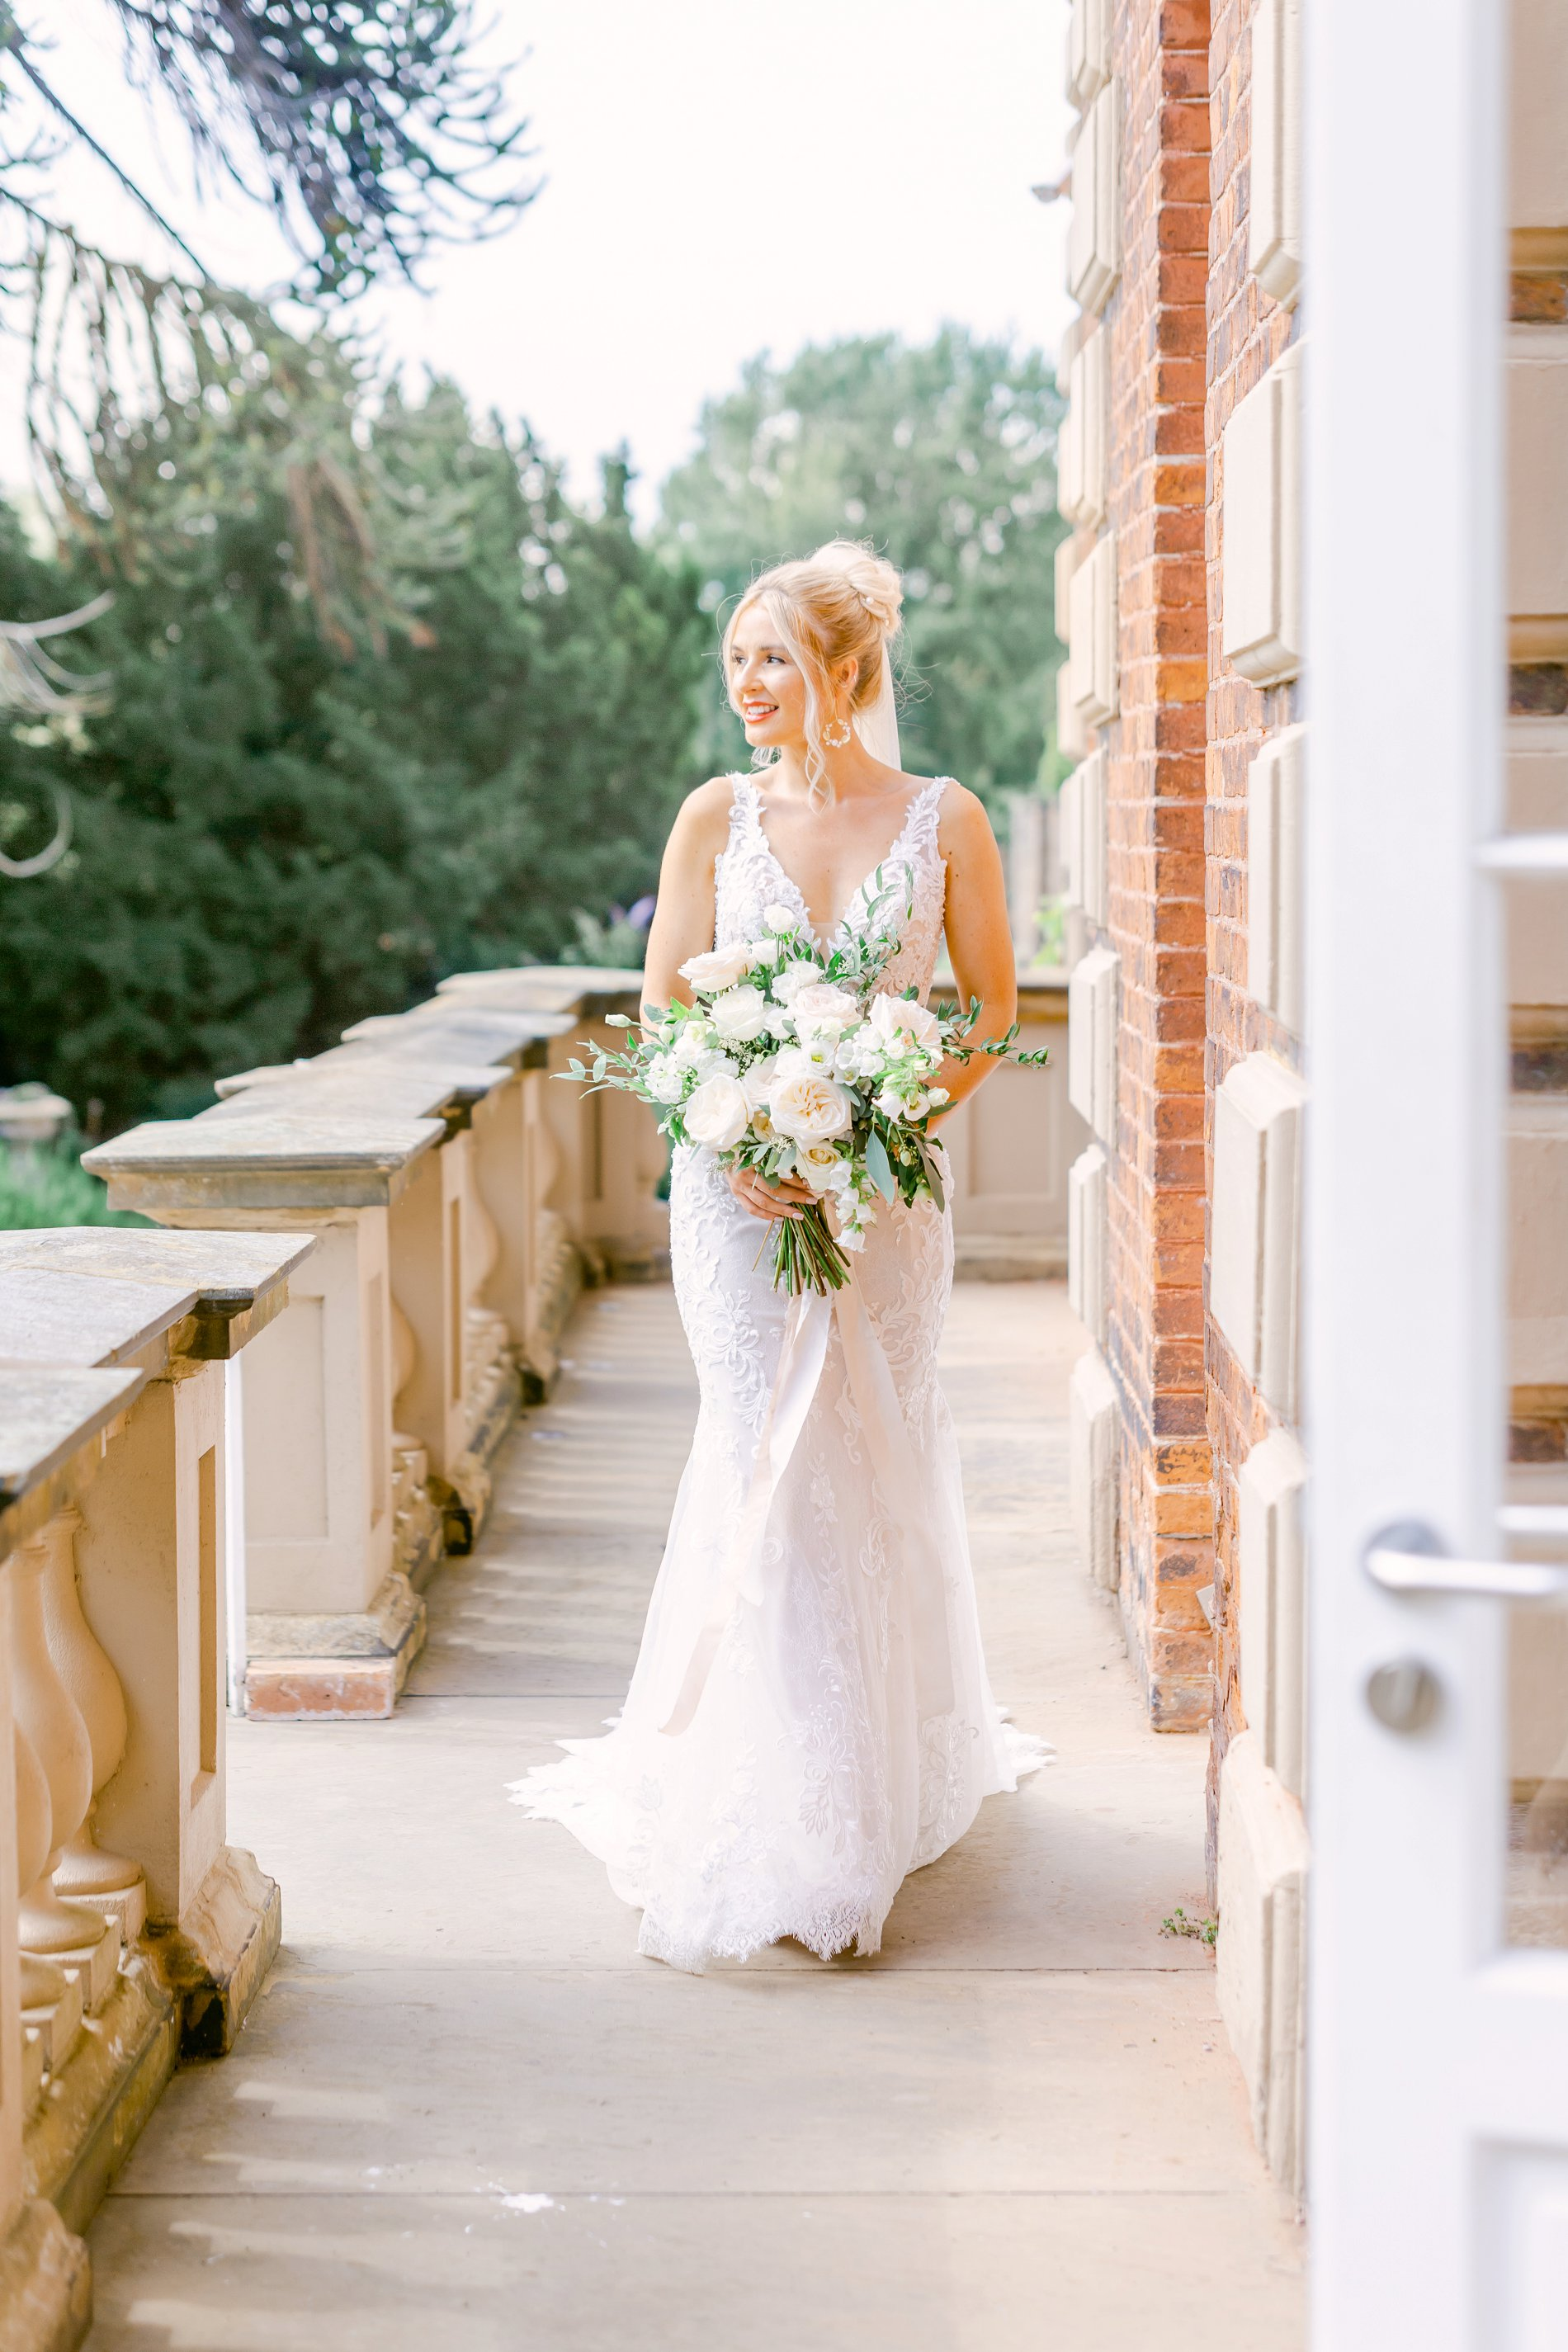 An Elegant UNVEILED Network wedding shoot at Hirst Priory (c) Ailsa Reeve Photography (37)